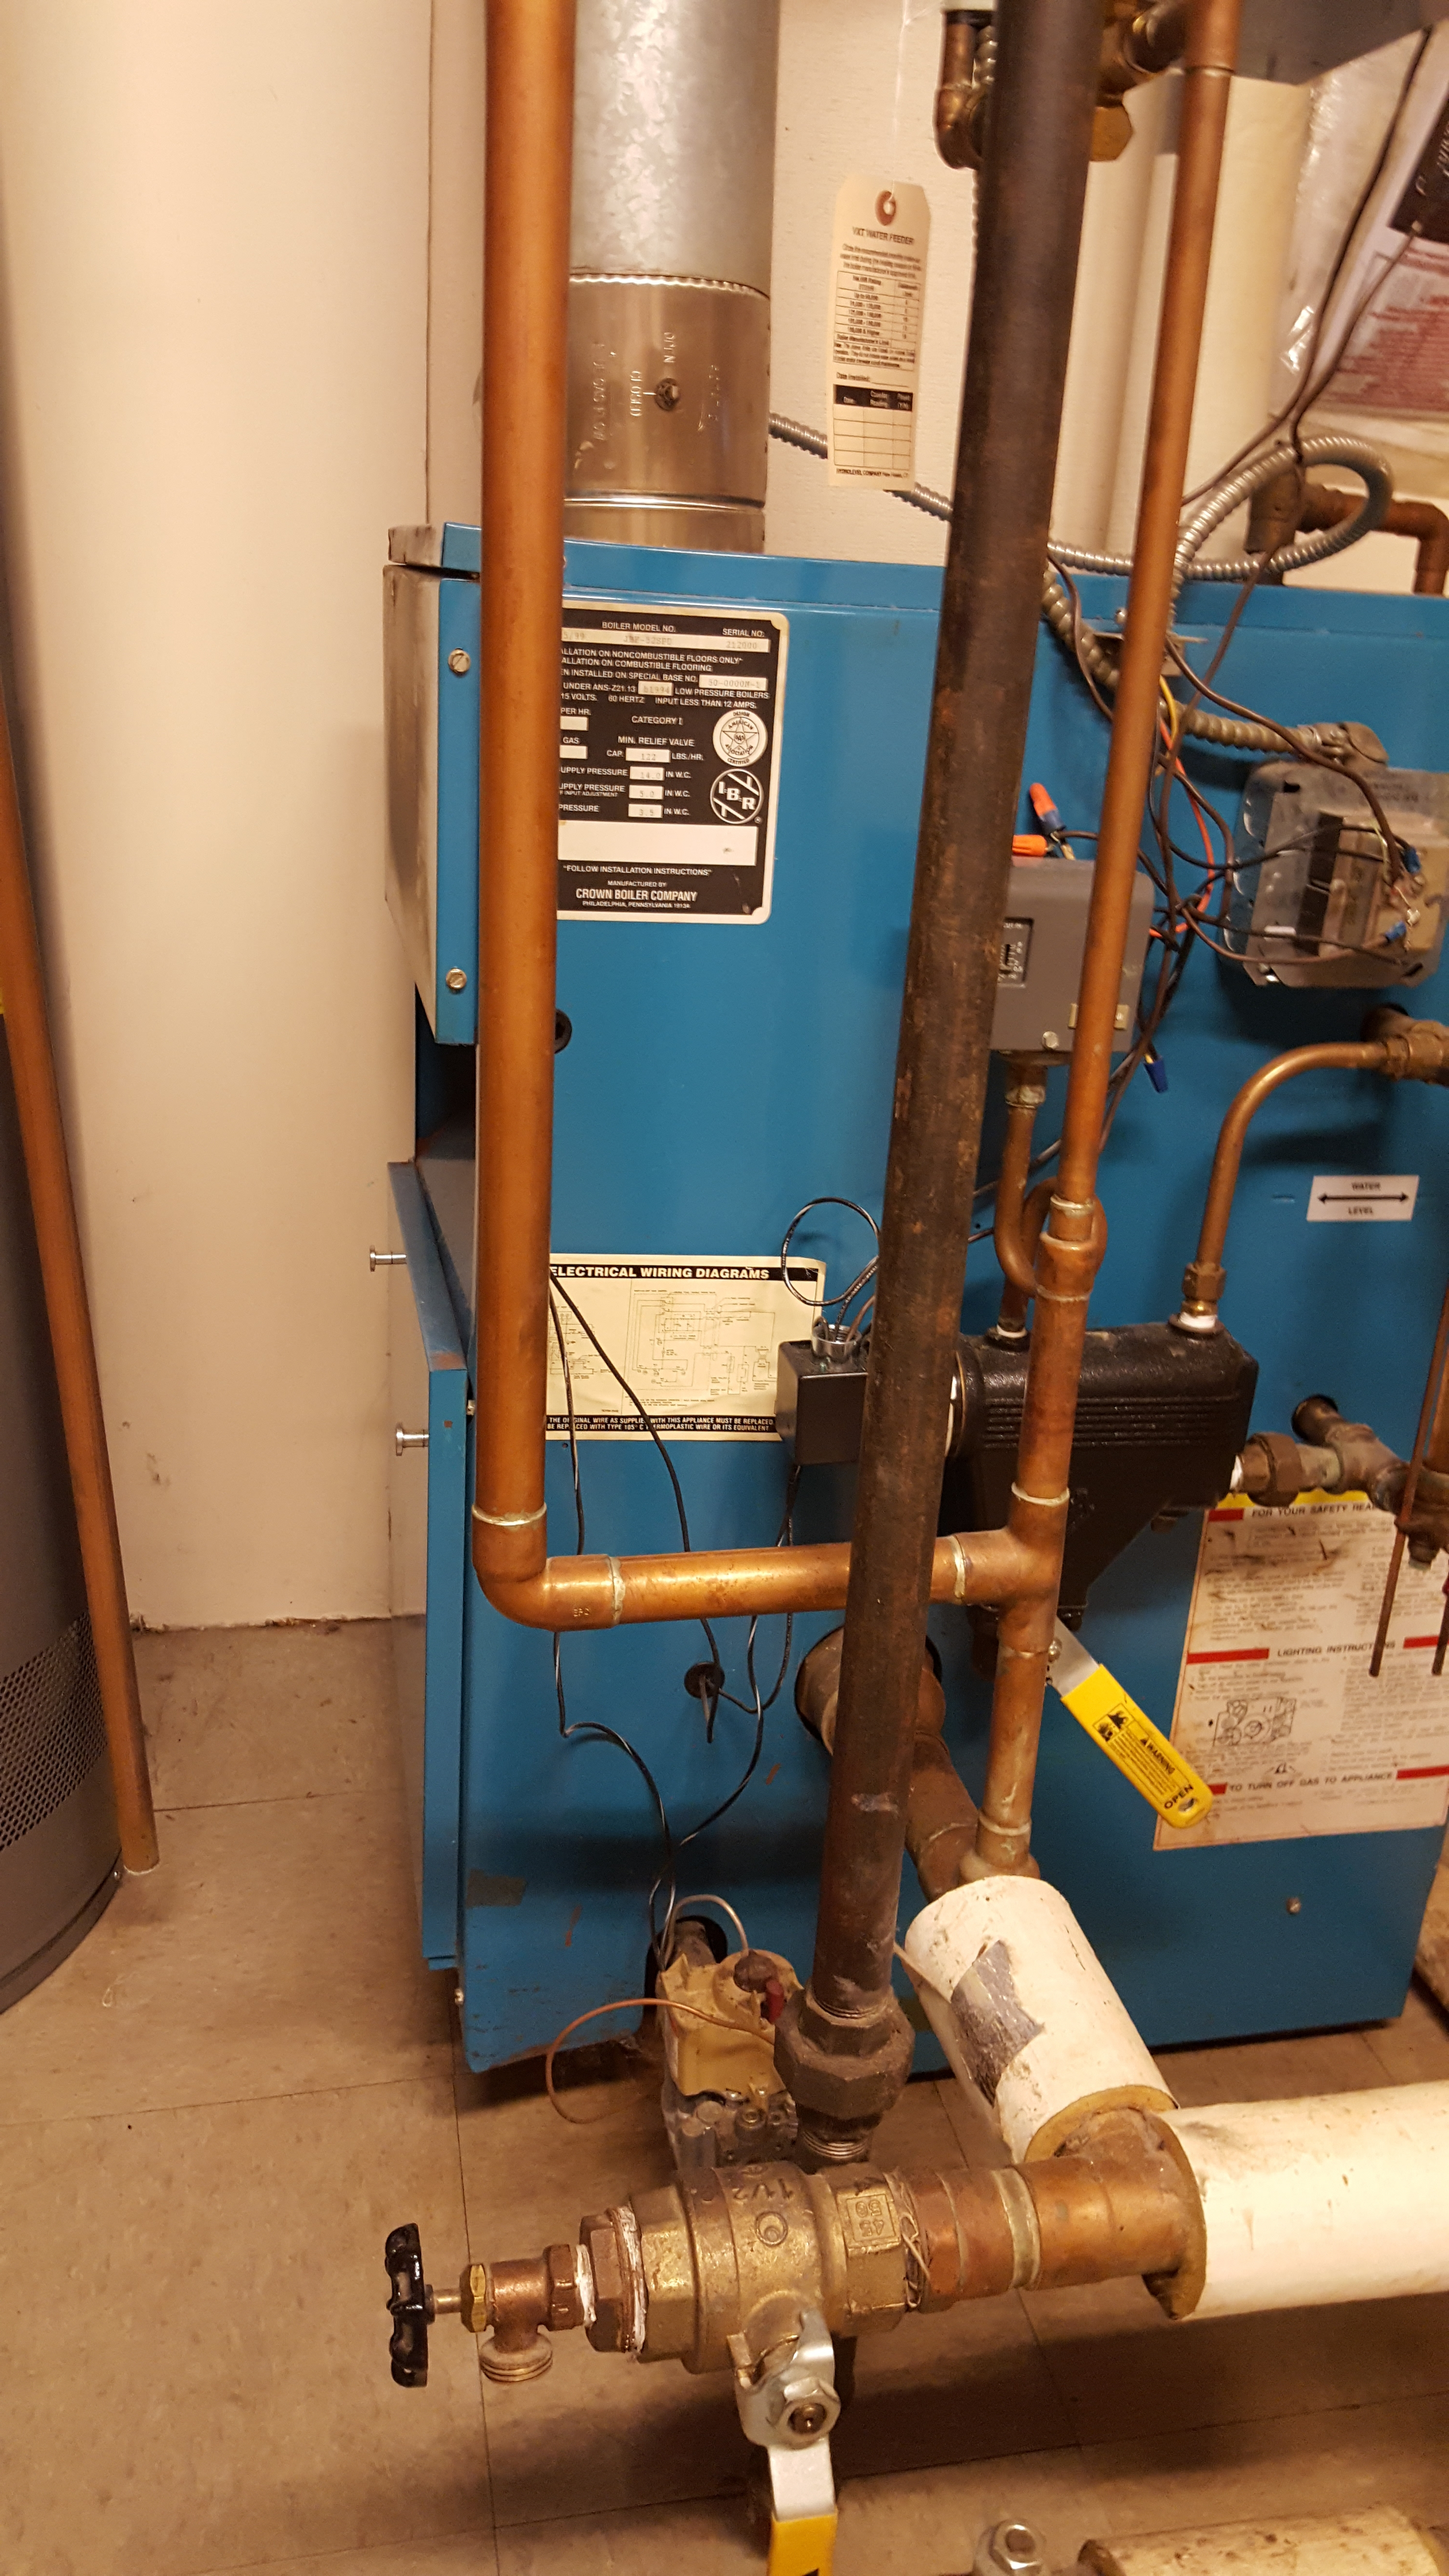 Boiler Runs Dry Then Floods Heating Help The Wall Crown Wiring Diagram Any Suggestions I Can Give My Friend Is Appreciated